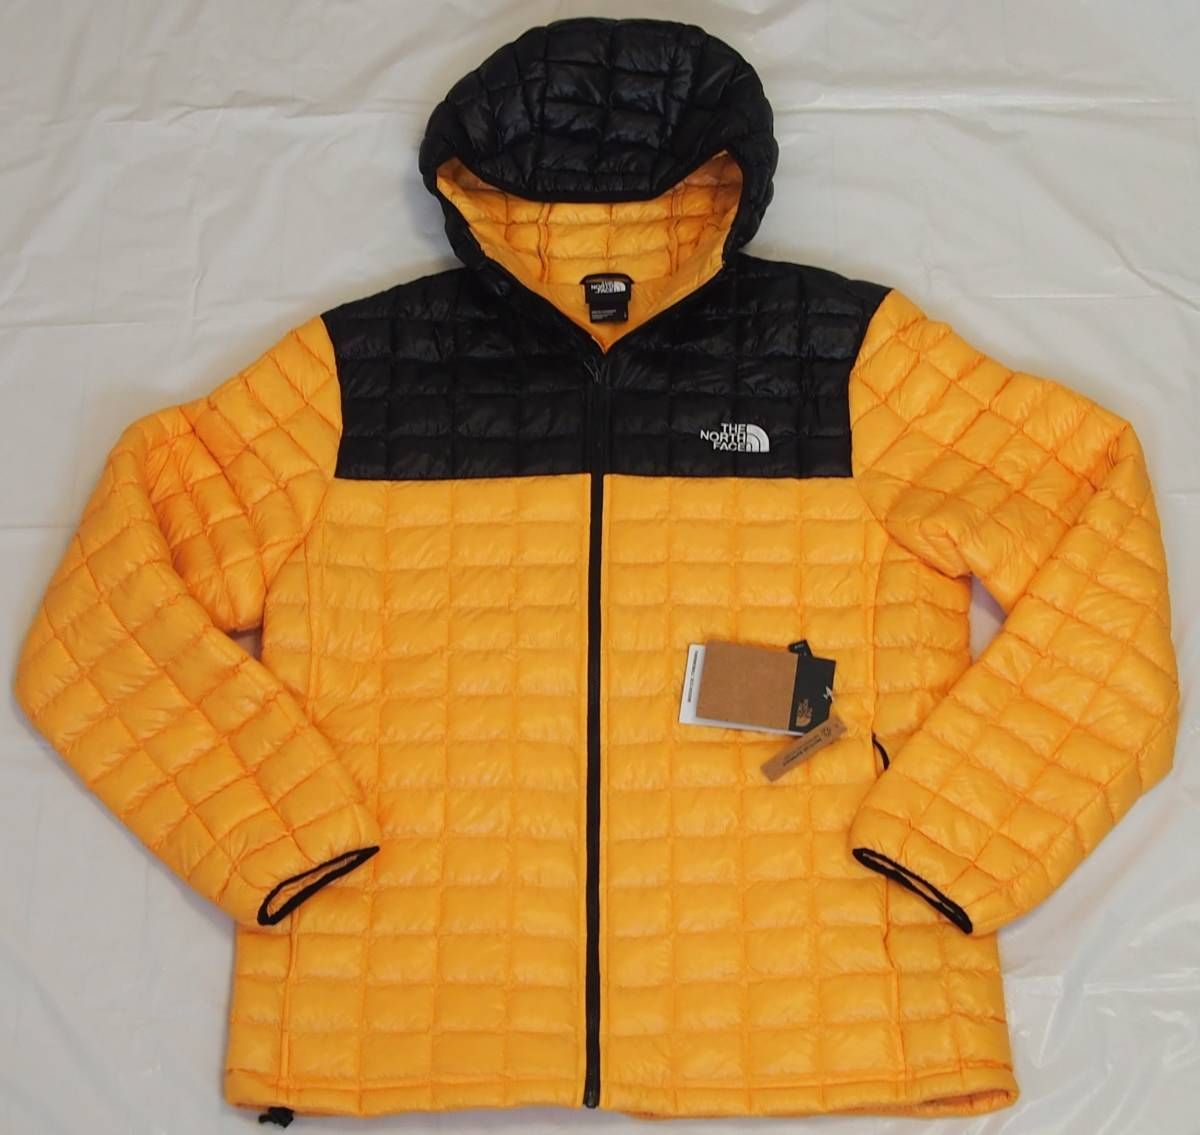 【USA購入、未使用タグ付】ノースフェイス メンズ Thermoball Eco ジャケット フード付 L イエロー The North Face Thermoball Eco Jacket_画像1